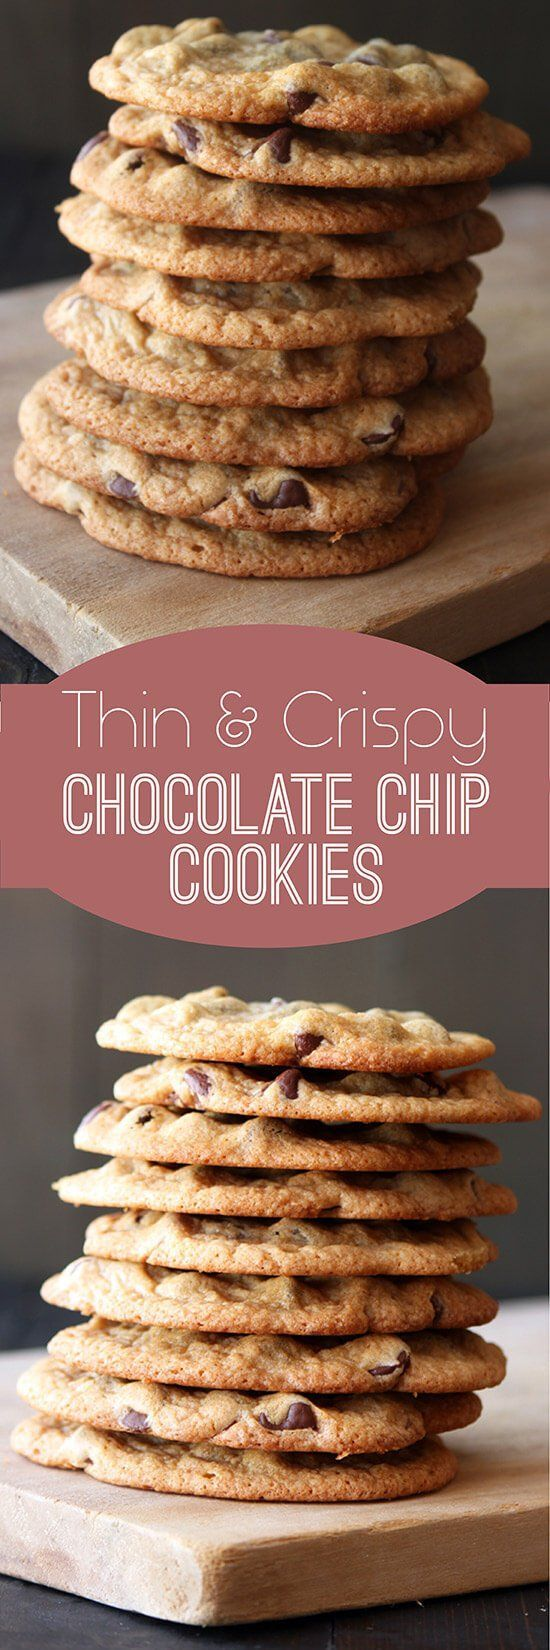 Best 25+ Chocolate chip cookie ideas on Pinterest | Chocolate chip ...